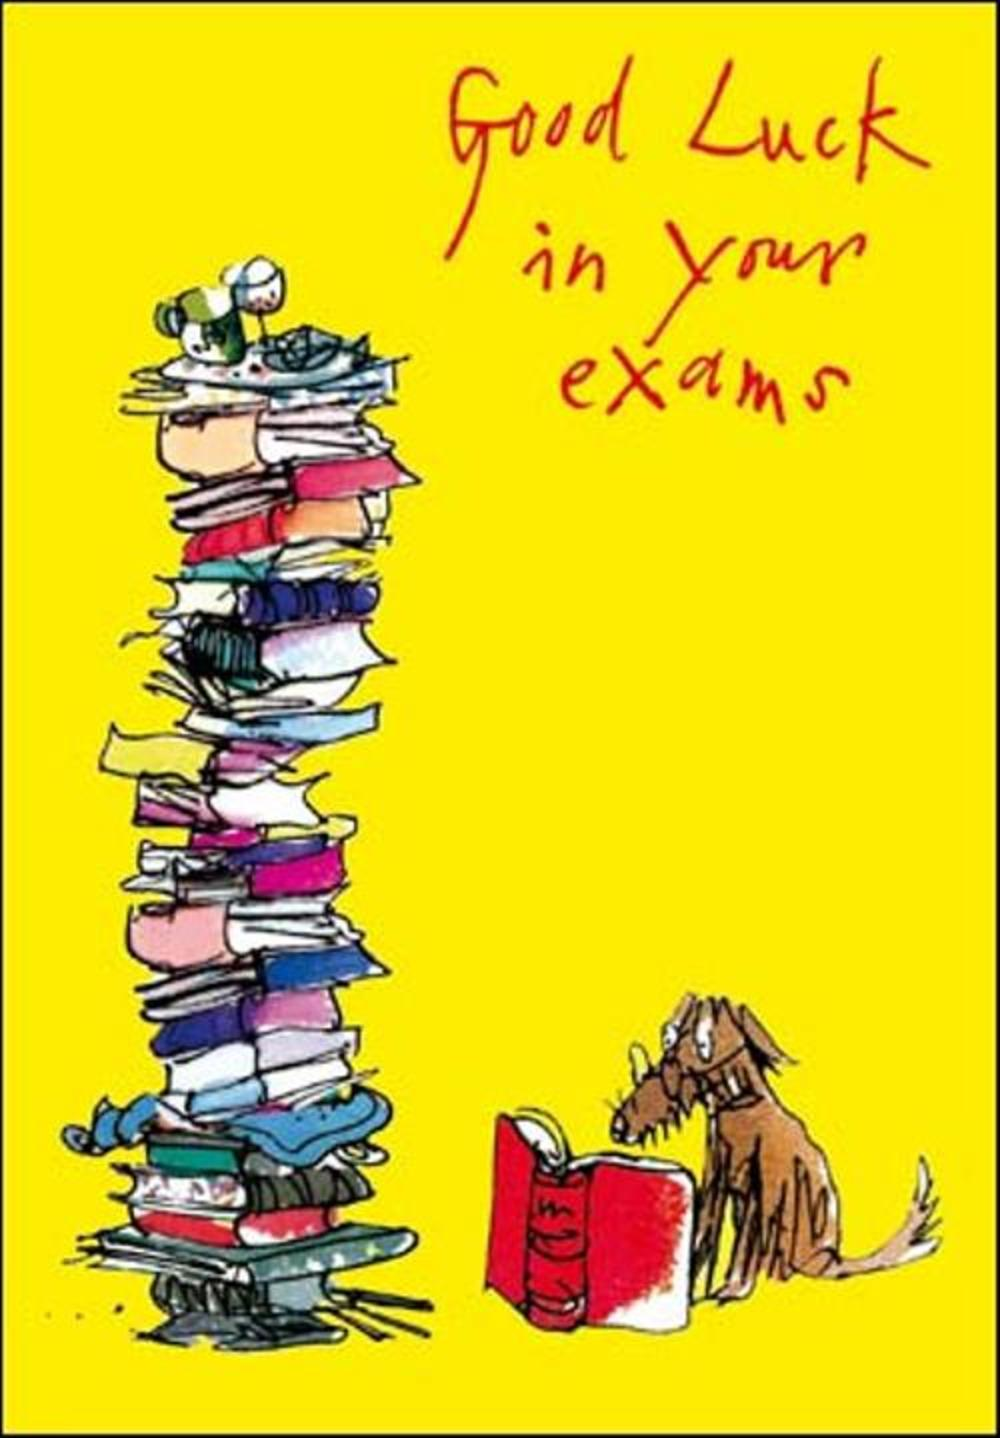 Quentin Blake Good Luck In Your Exams Greeting Card Cards Love Kates